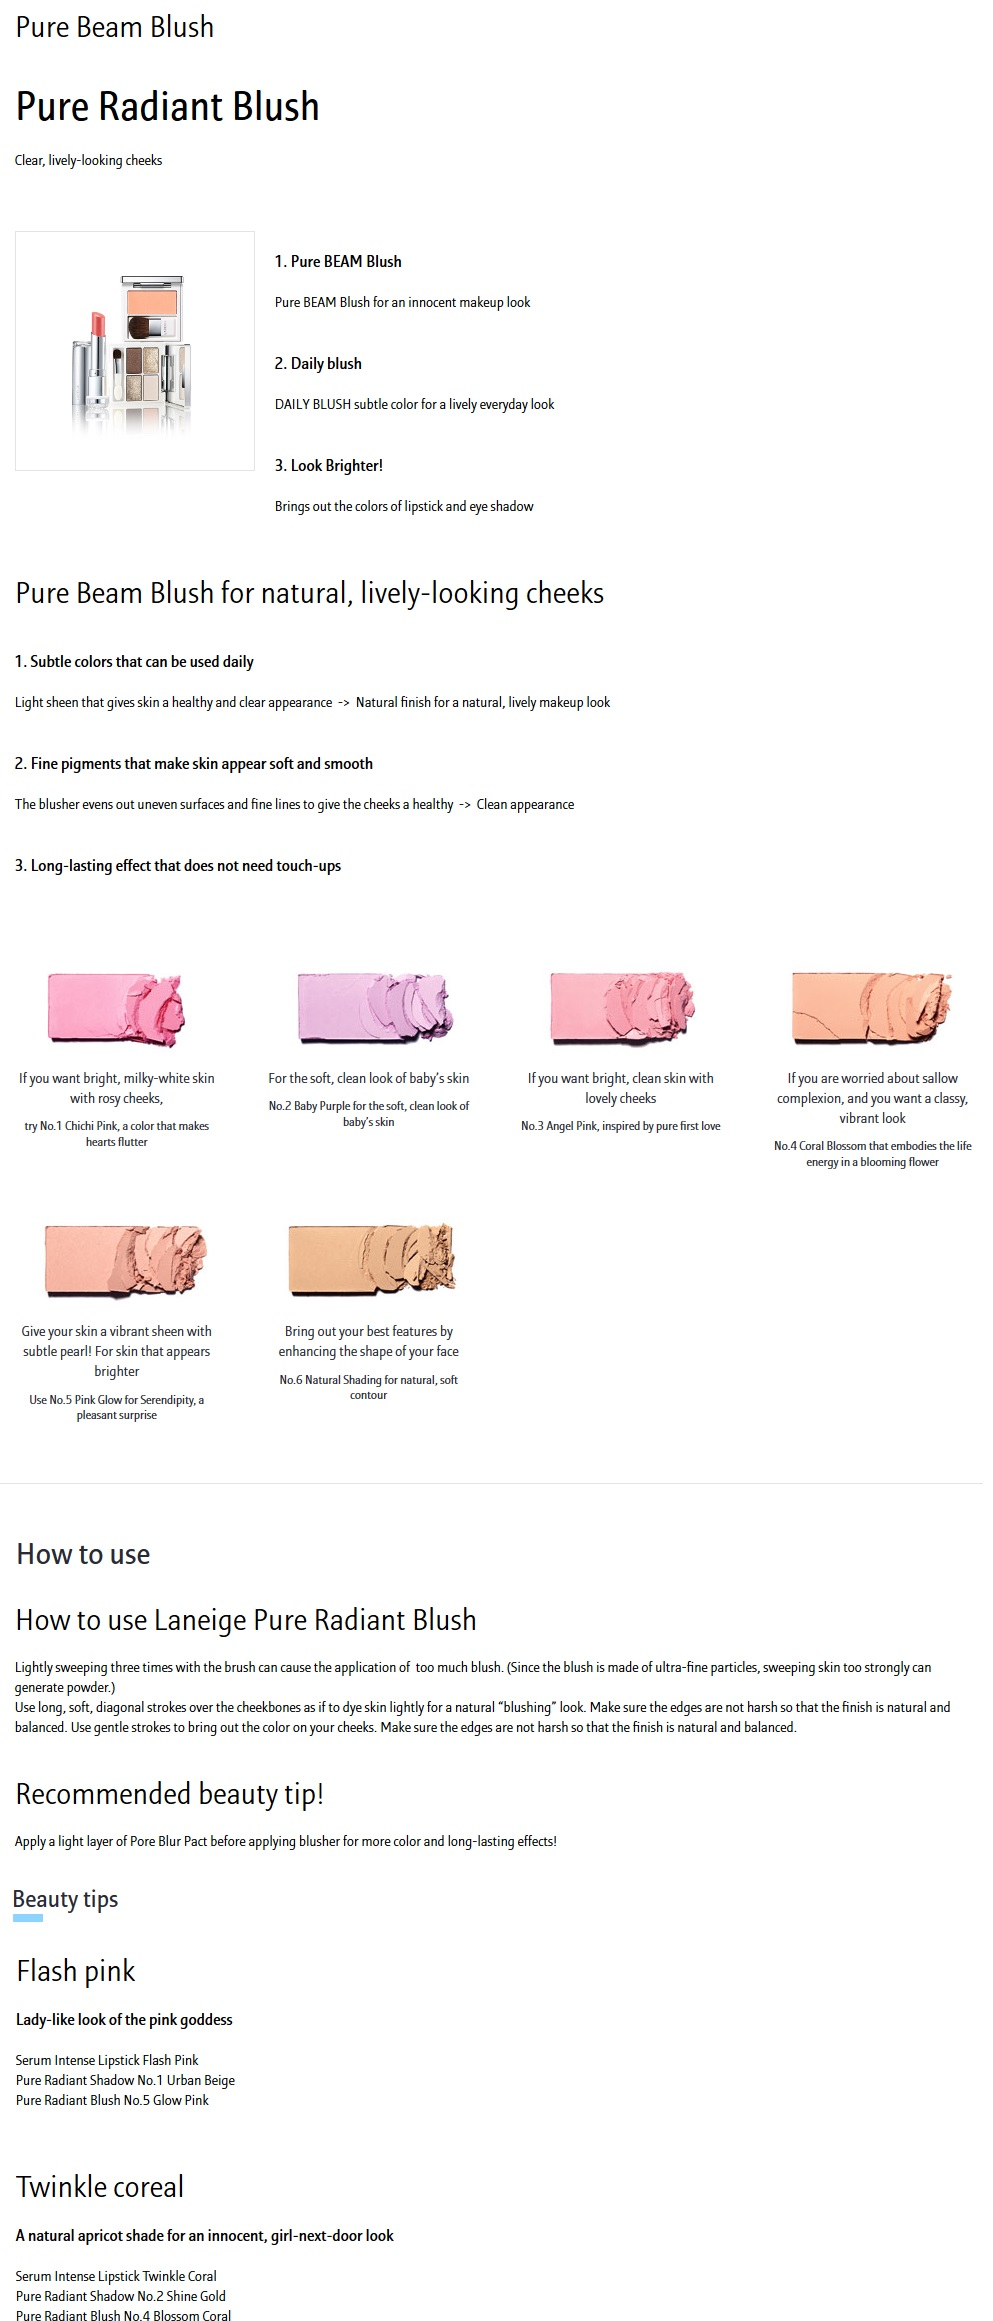 LANEIGE Pure Radiant Blush #1 Chichi Pink